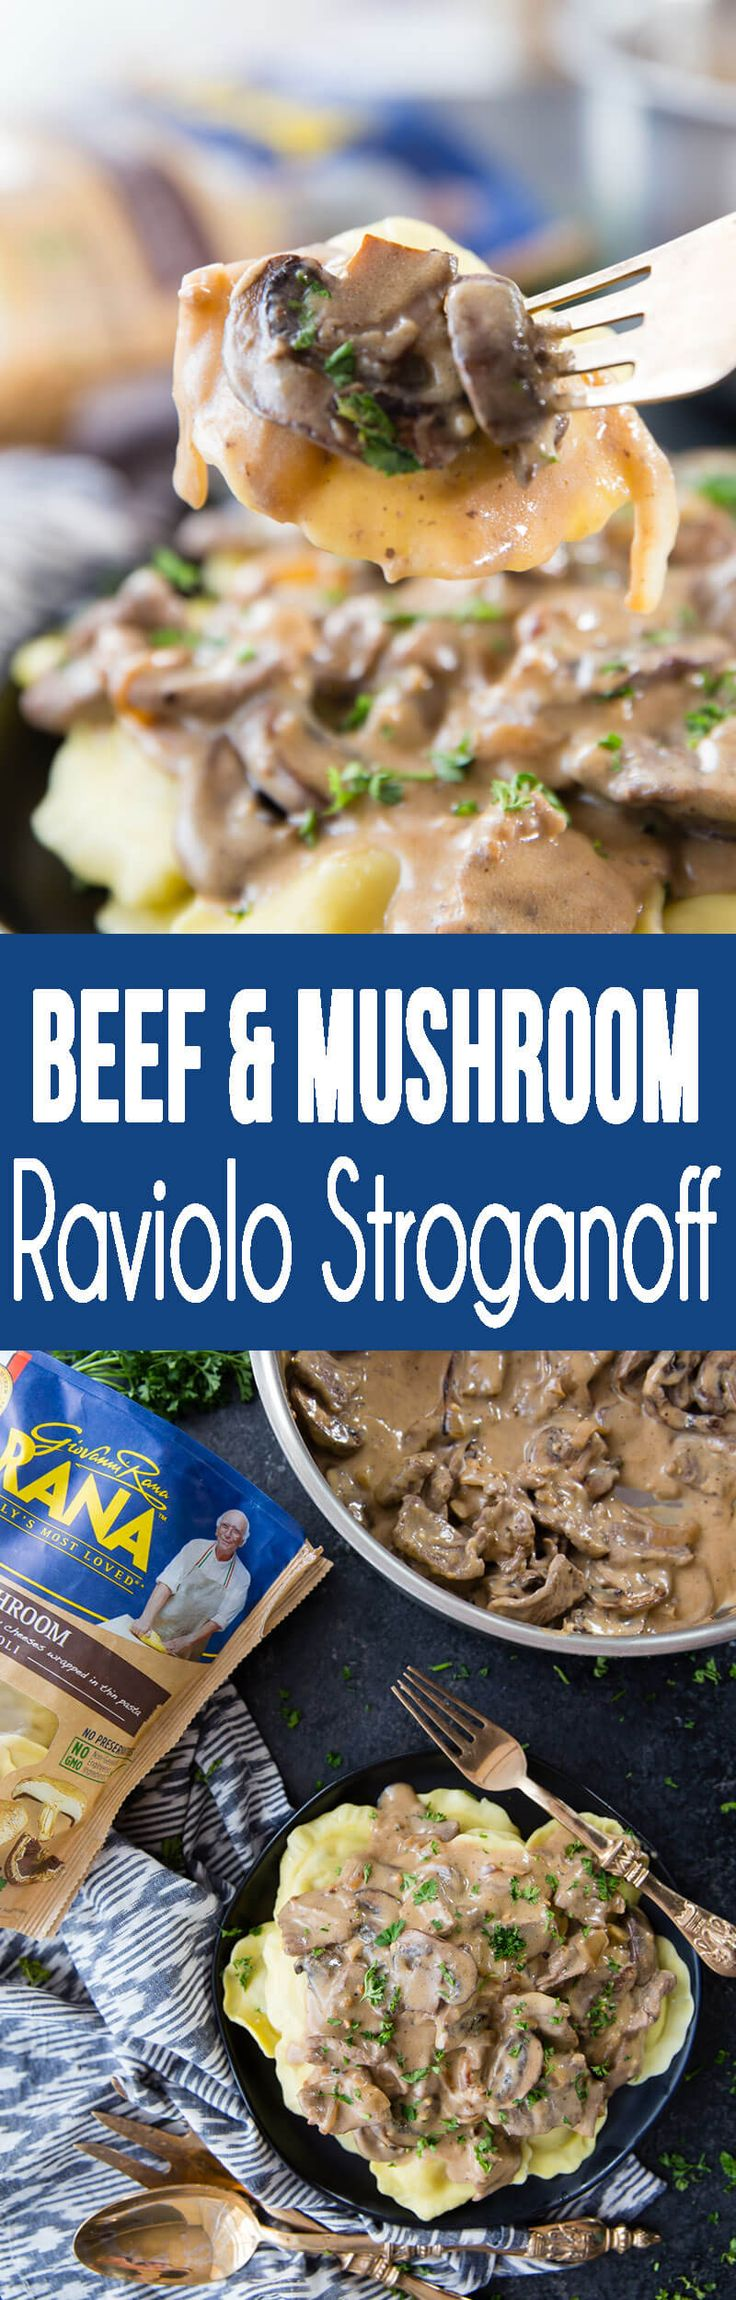 Beef and Mushroom Ravioli Stroganoff with delicious sauce | Eazy Peazy Mealz